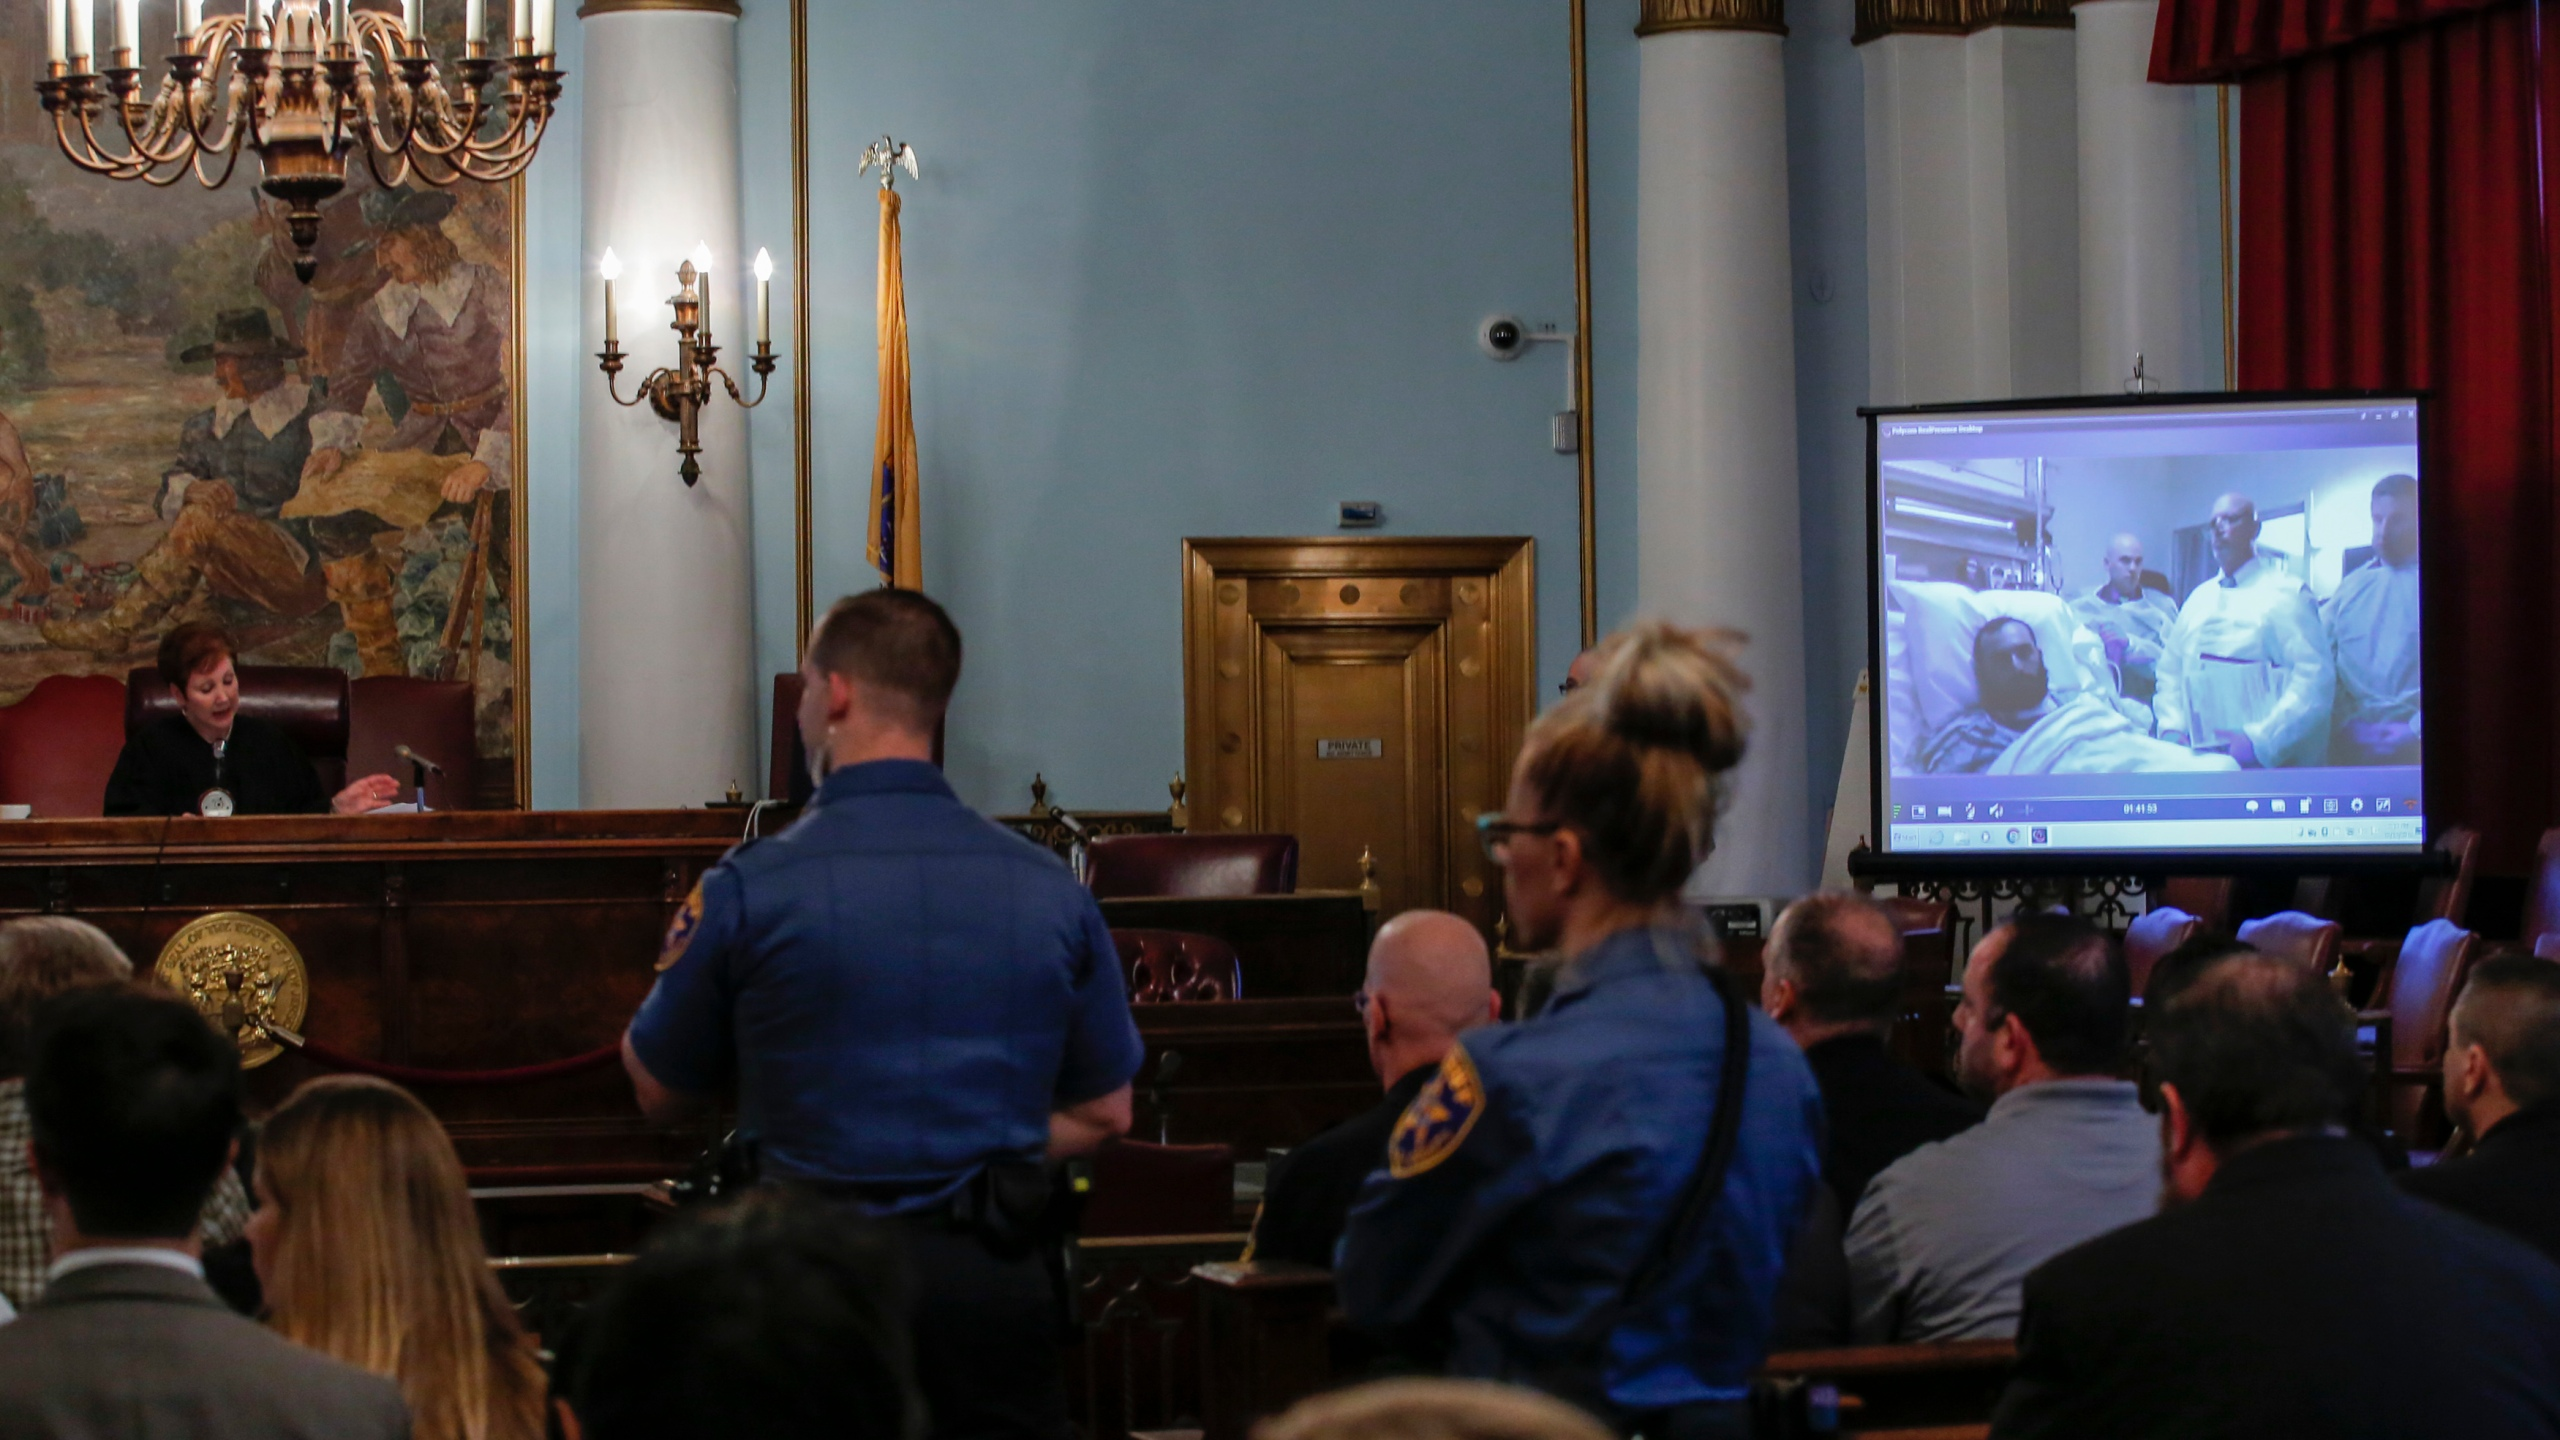 Suspected bomber Ahmad Khan Rahami attends the first court hearing on screen in Elizabeth, New Jersey while he remains in University Hospital in Newark, on October 13, 2016. (Credit Kena Betancur/AFP/Getty Images)